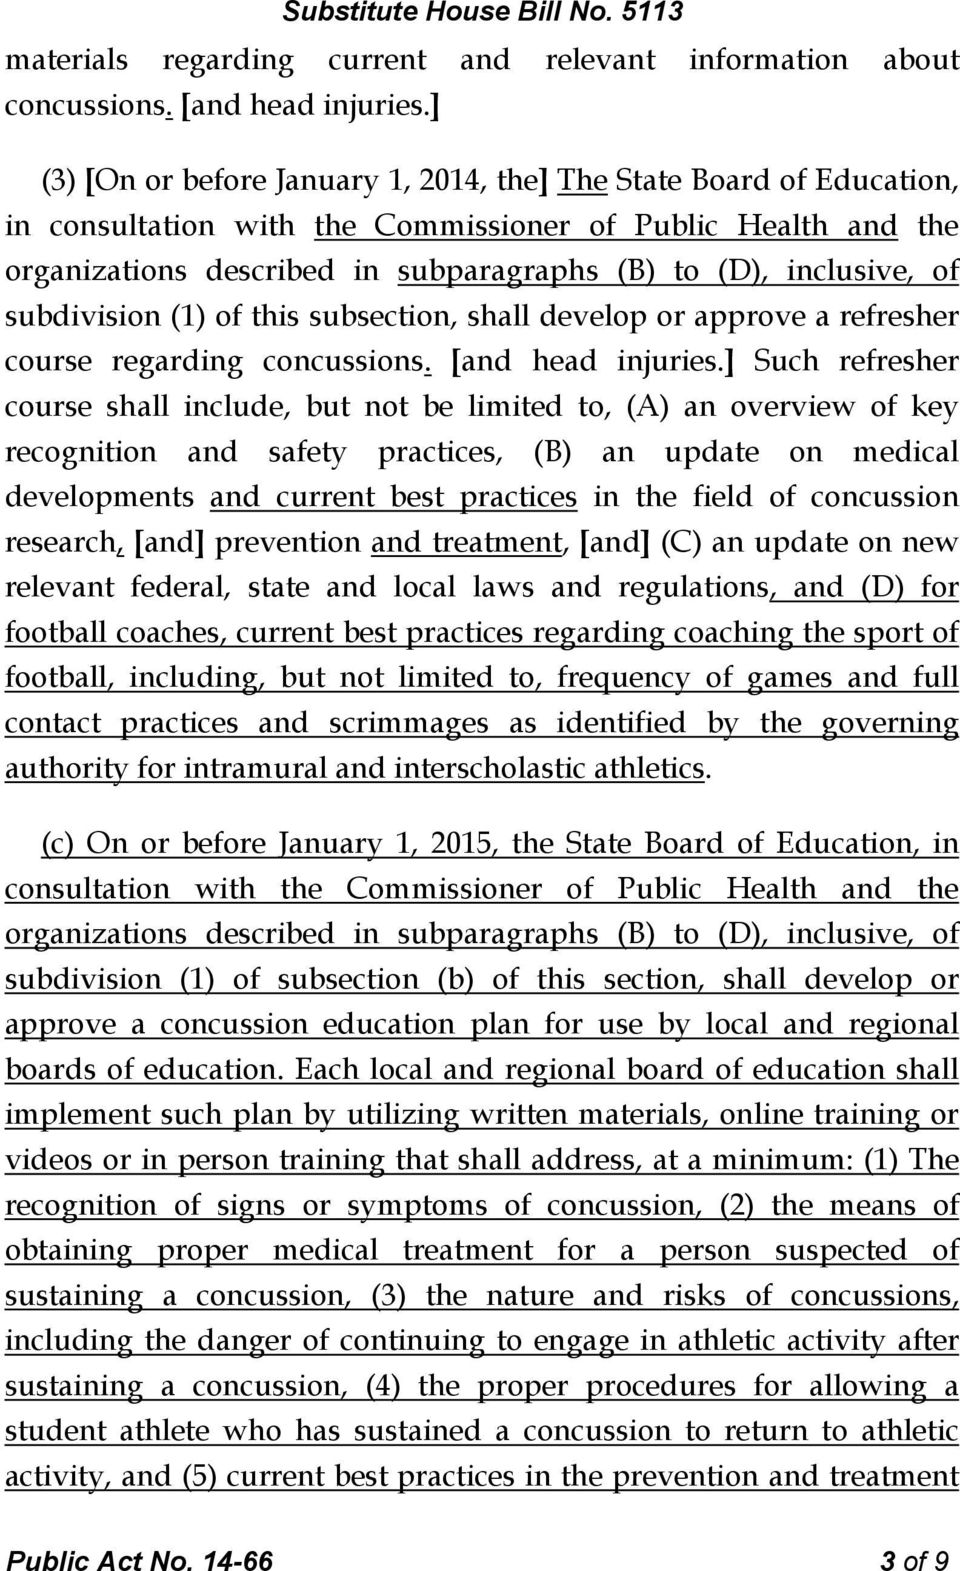 of subdivision (1) of this subsection, shall develop or approve a refresher course regarding concussions. [and head injuries.